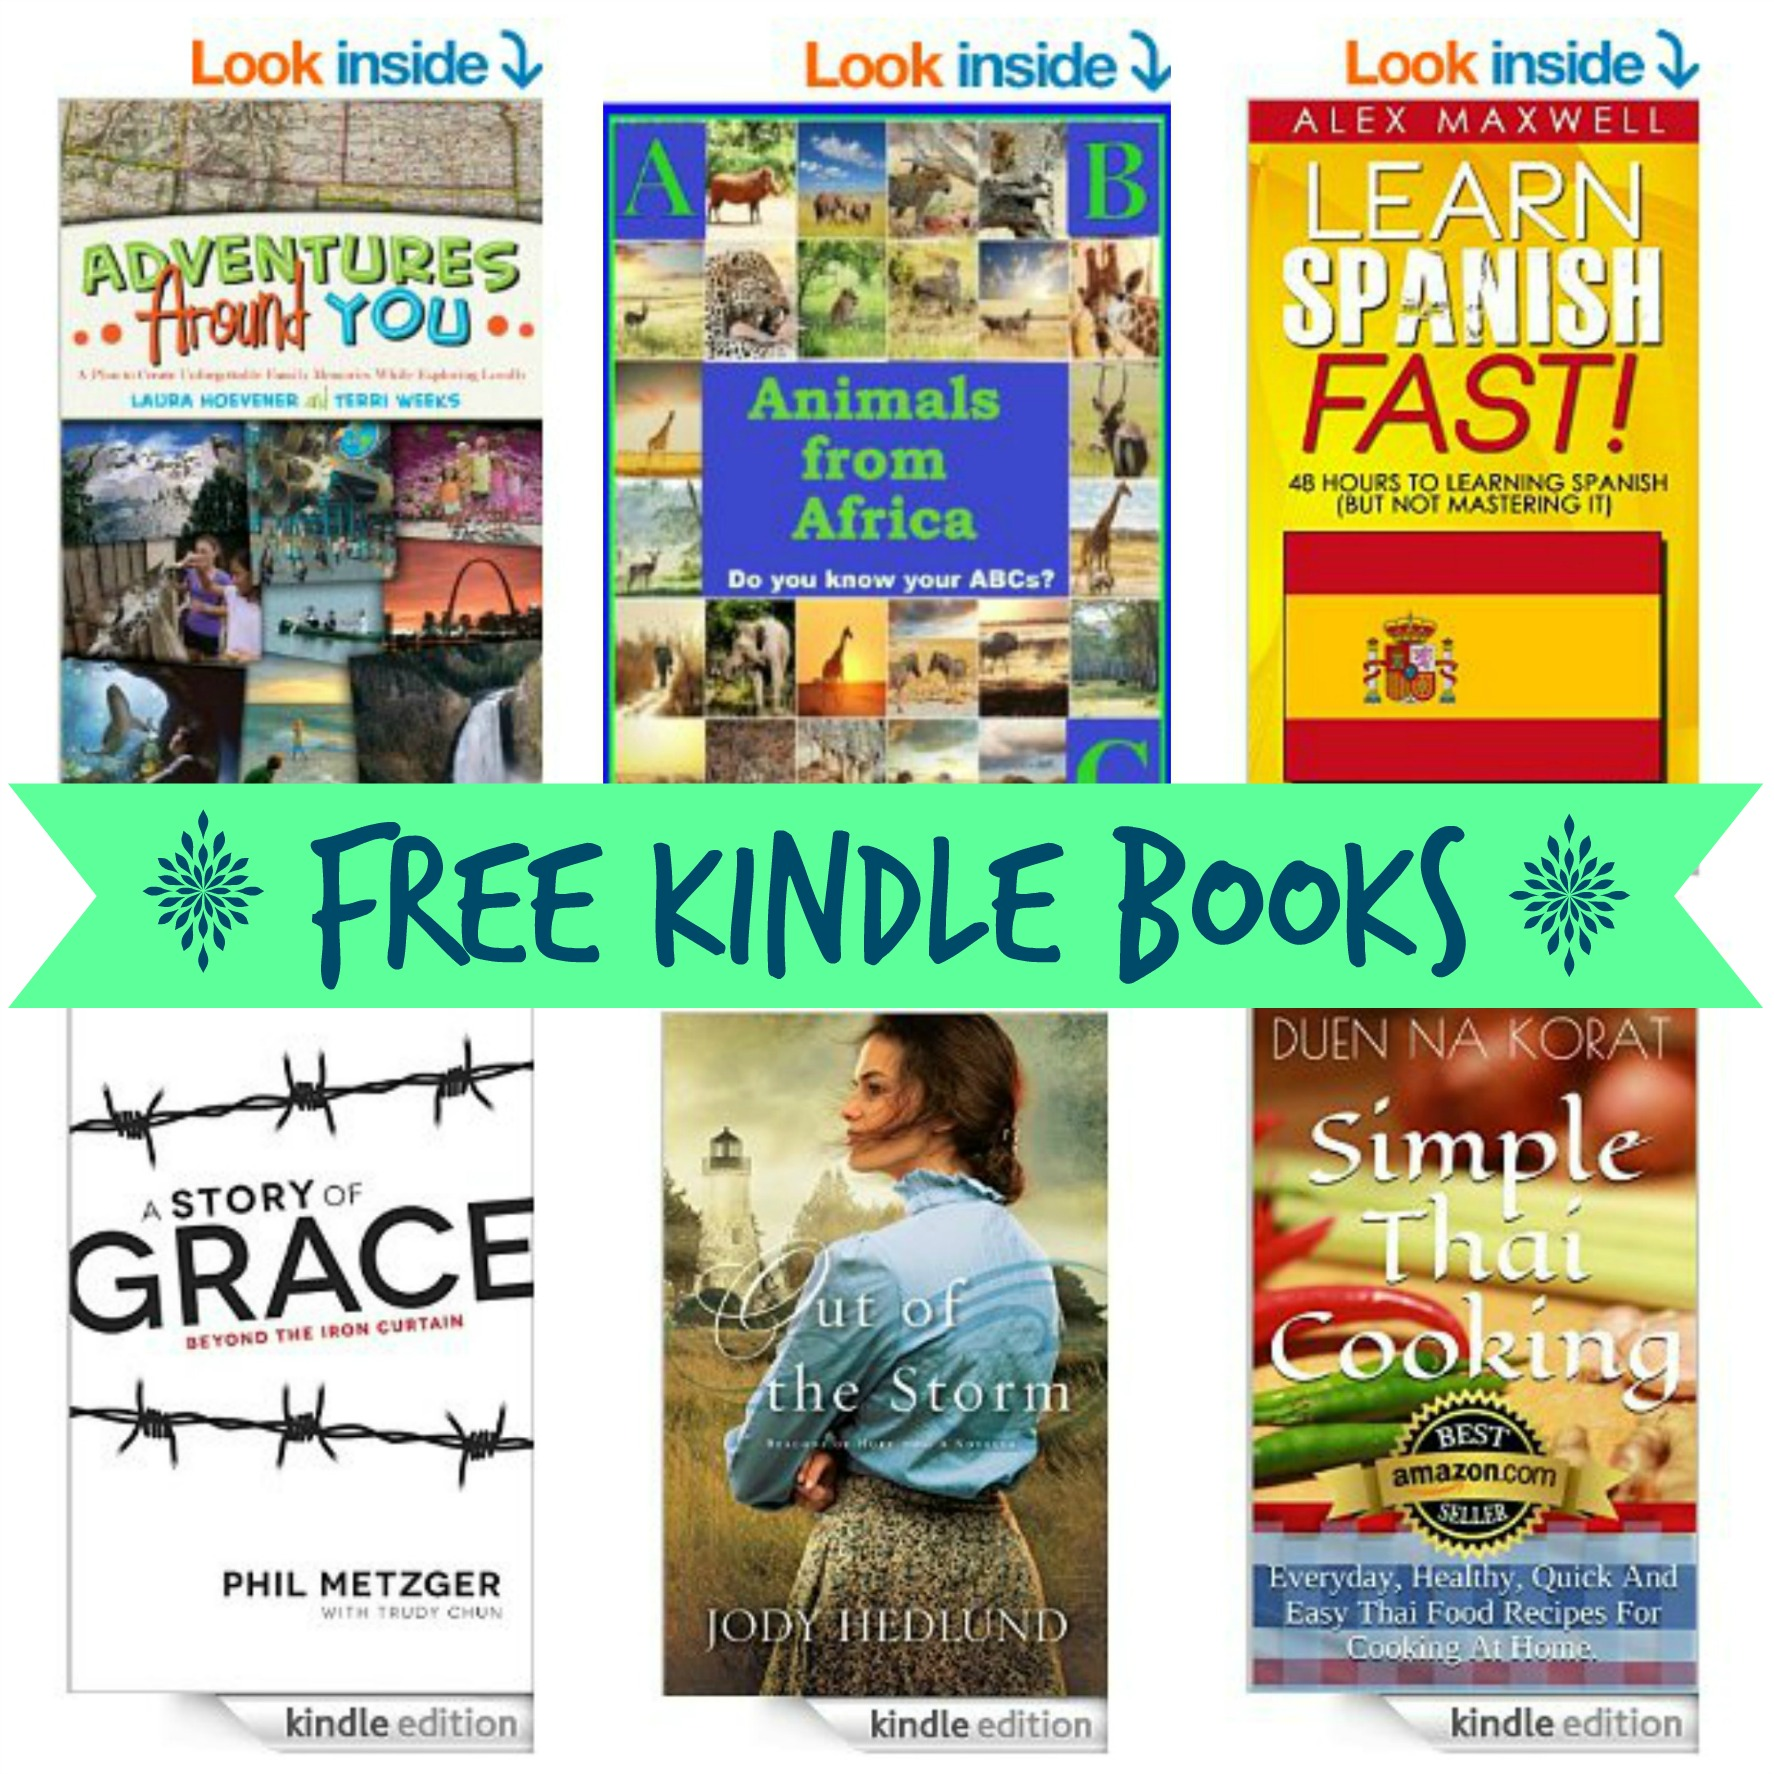 Learn Sign Language Quickly Easily With These Android Apps: 17 FREE Kindle Books: Frugal Family Fun, Learn Spanish